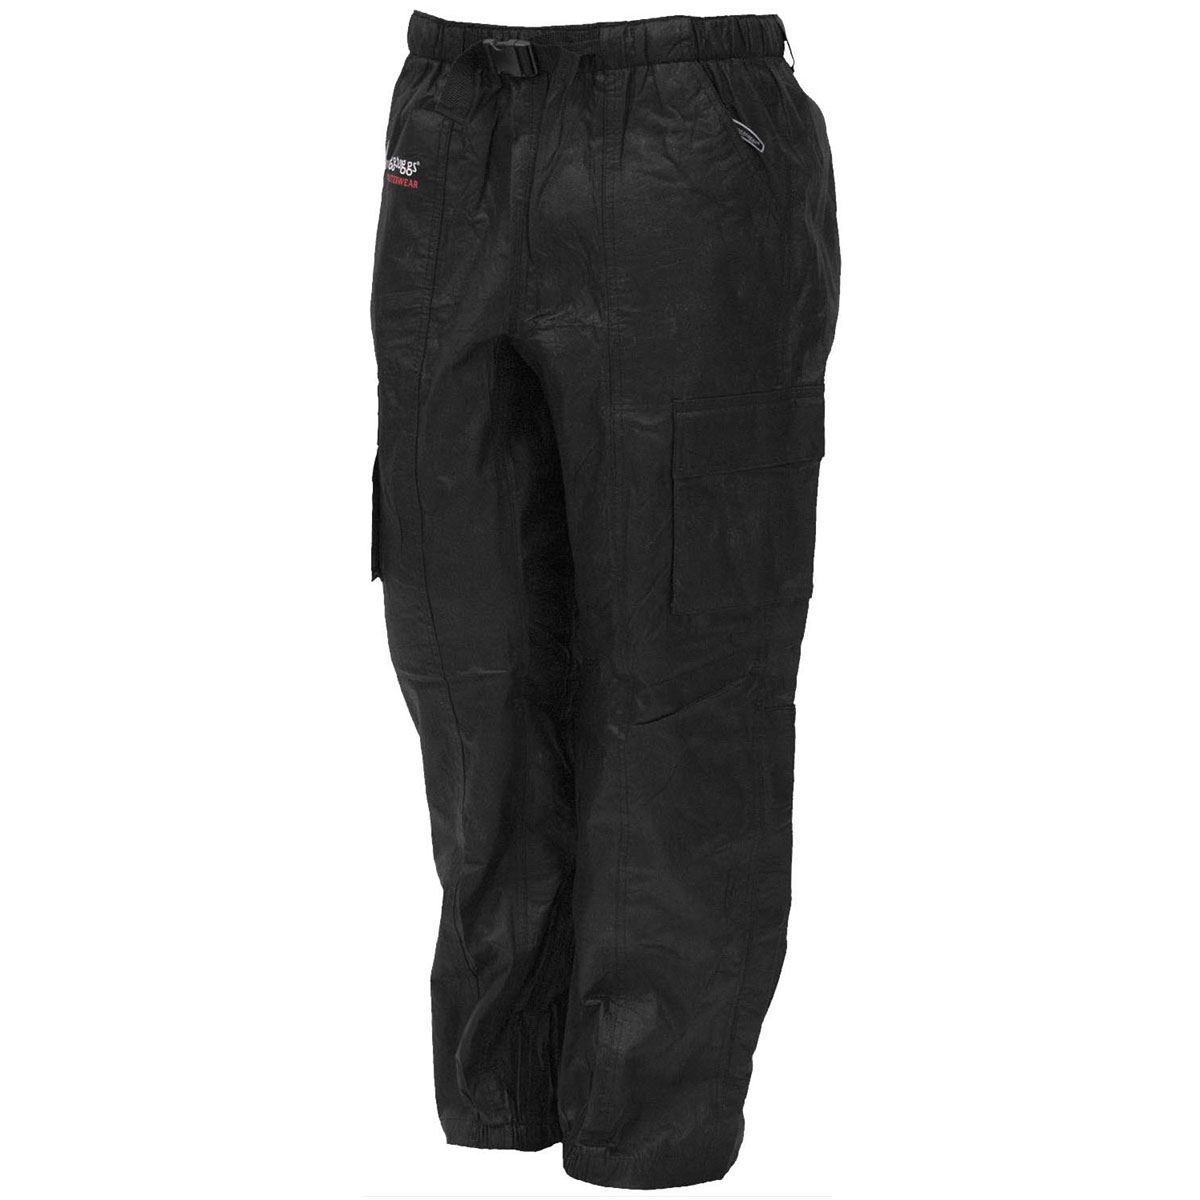 Frogg Toggs Tekk Toad Rainwear Black Men′s Pants